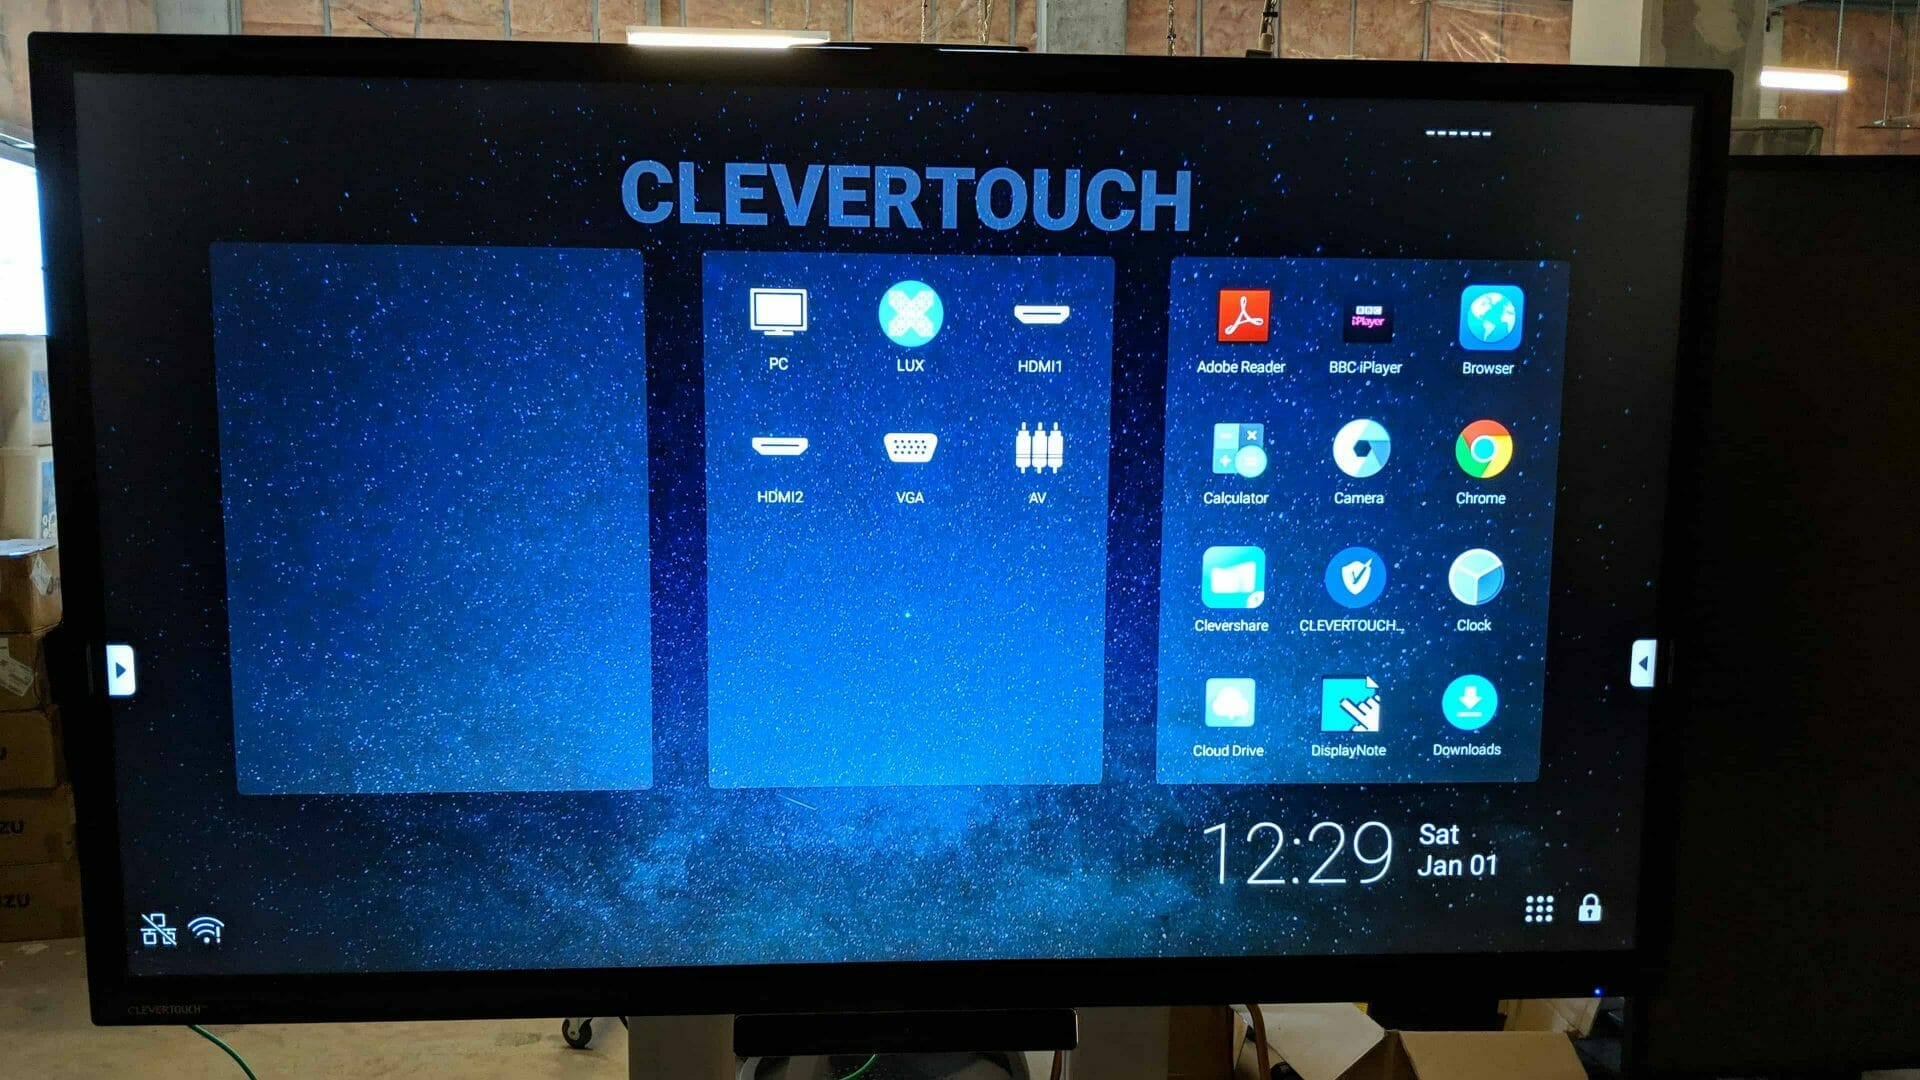 Advertise Me Digital Signage UNSW 85 E Cap Clevertouch e1566803356236